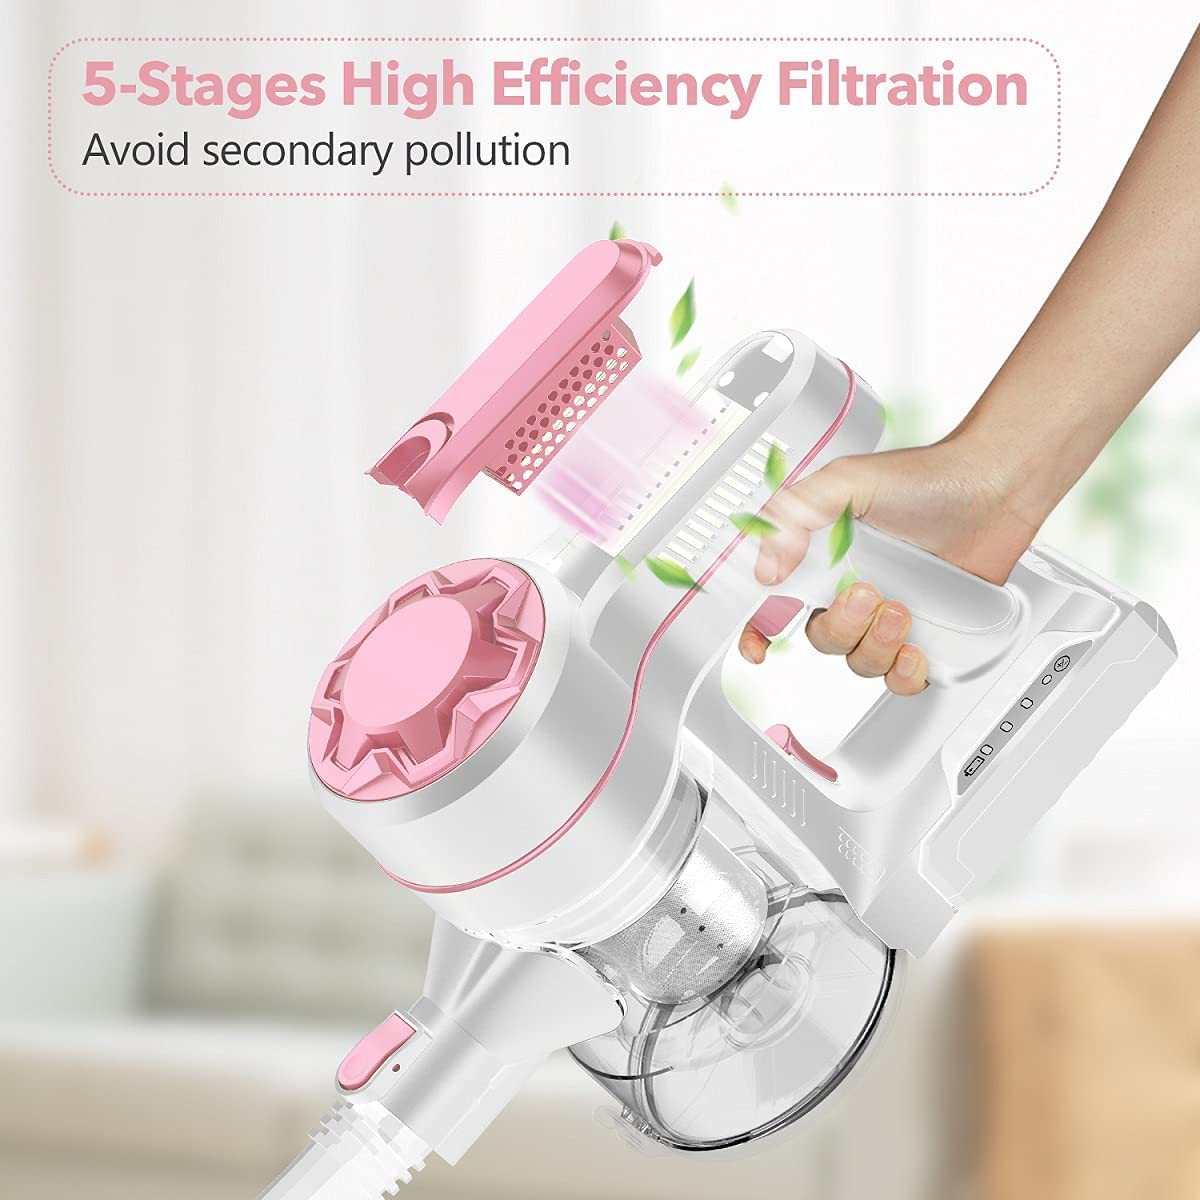 Cordless Vacuum Cleaner with Newly Upgraded Roller Brush, Powerful Suction Stick Vacuum Portable Lightweight Handheld Vacuum for Home Hard Floor